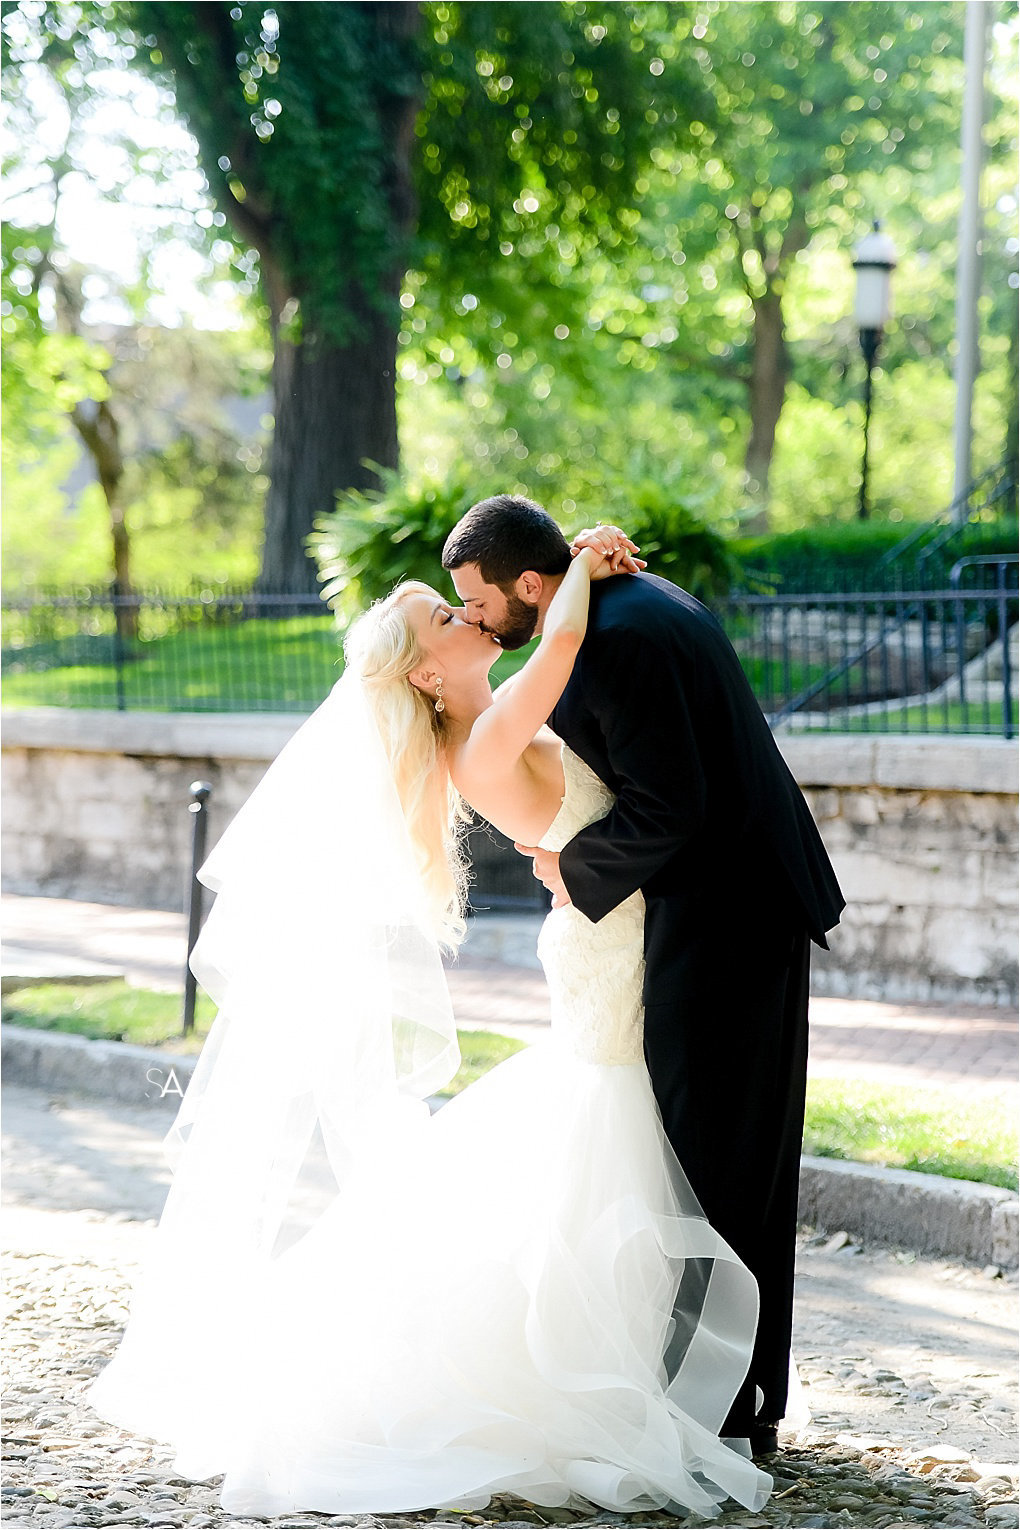 Indianapolis Wedding Photographer | Sara Ackermann Photography-40